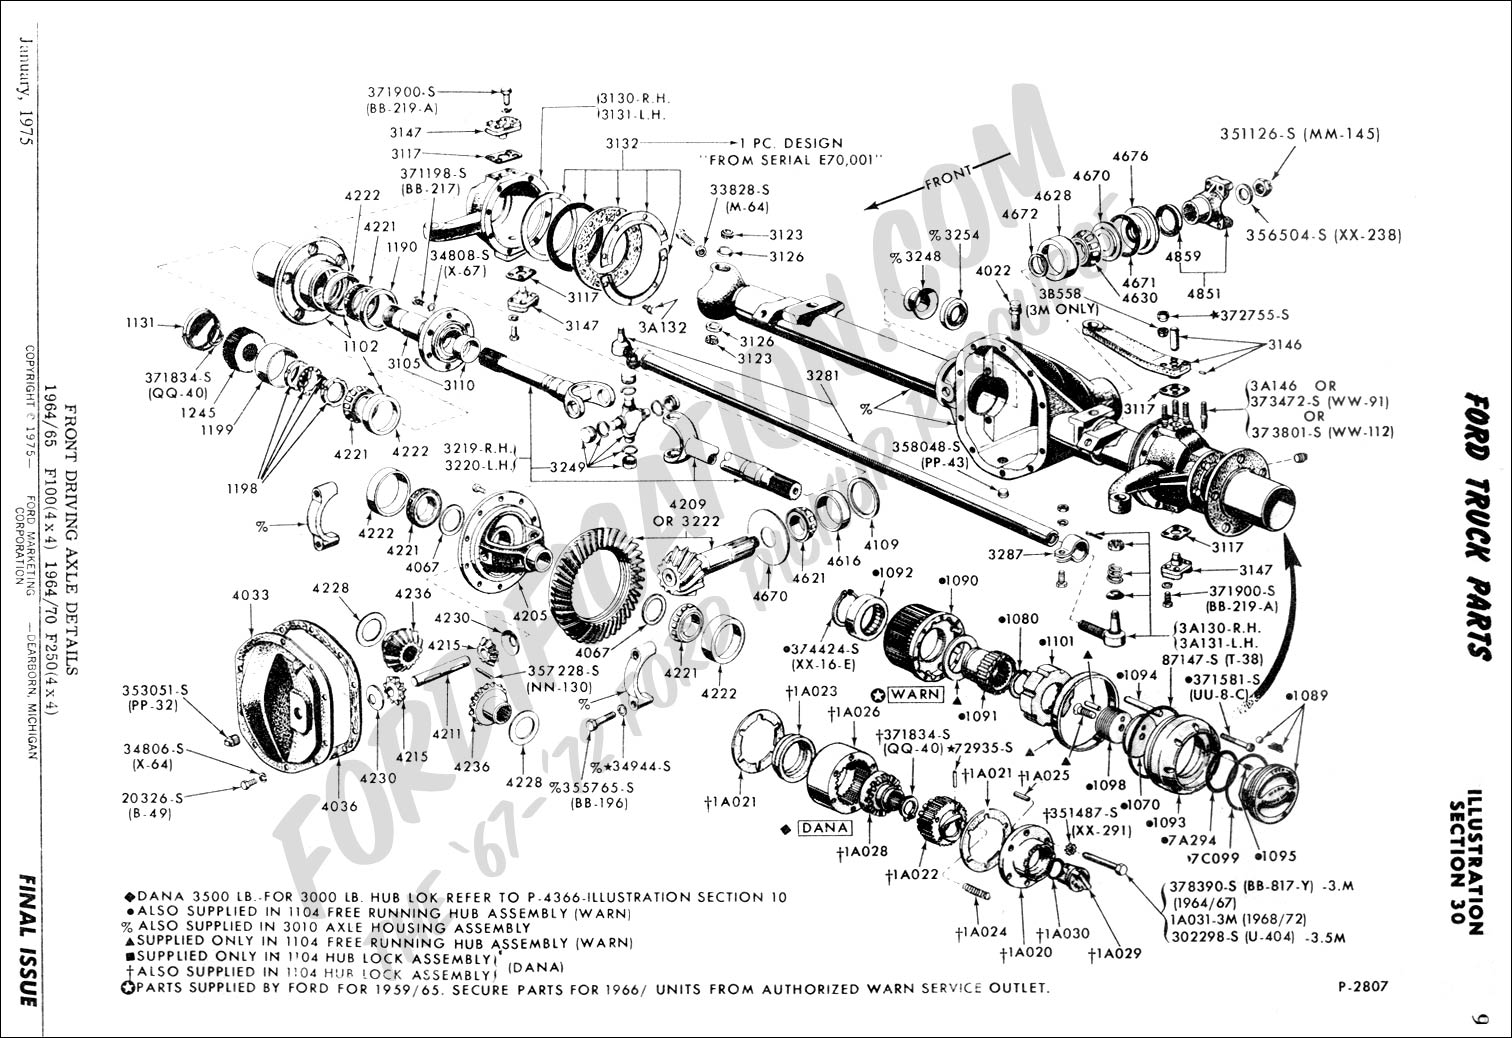 1984 Ford Ranger Clutch Parts Diagram Wire Data Schema 2011 F350 Wiring Http Technoanswersblogspotcom 06 Truck Technical Drawings And Schematics Section A Hydraulic Bleeding